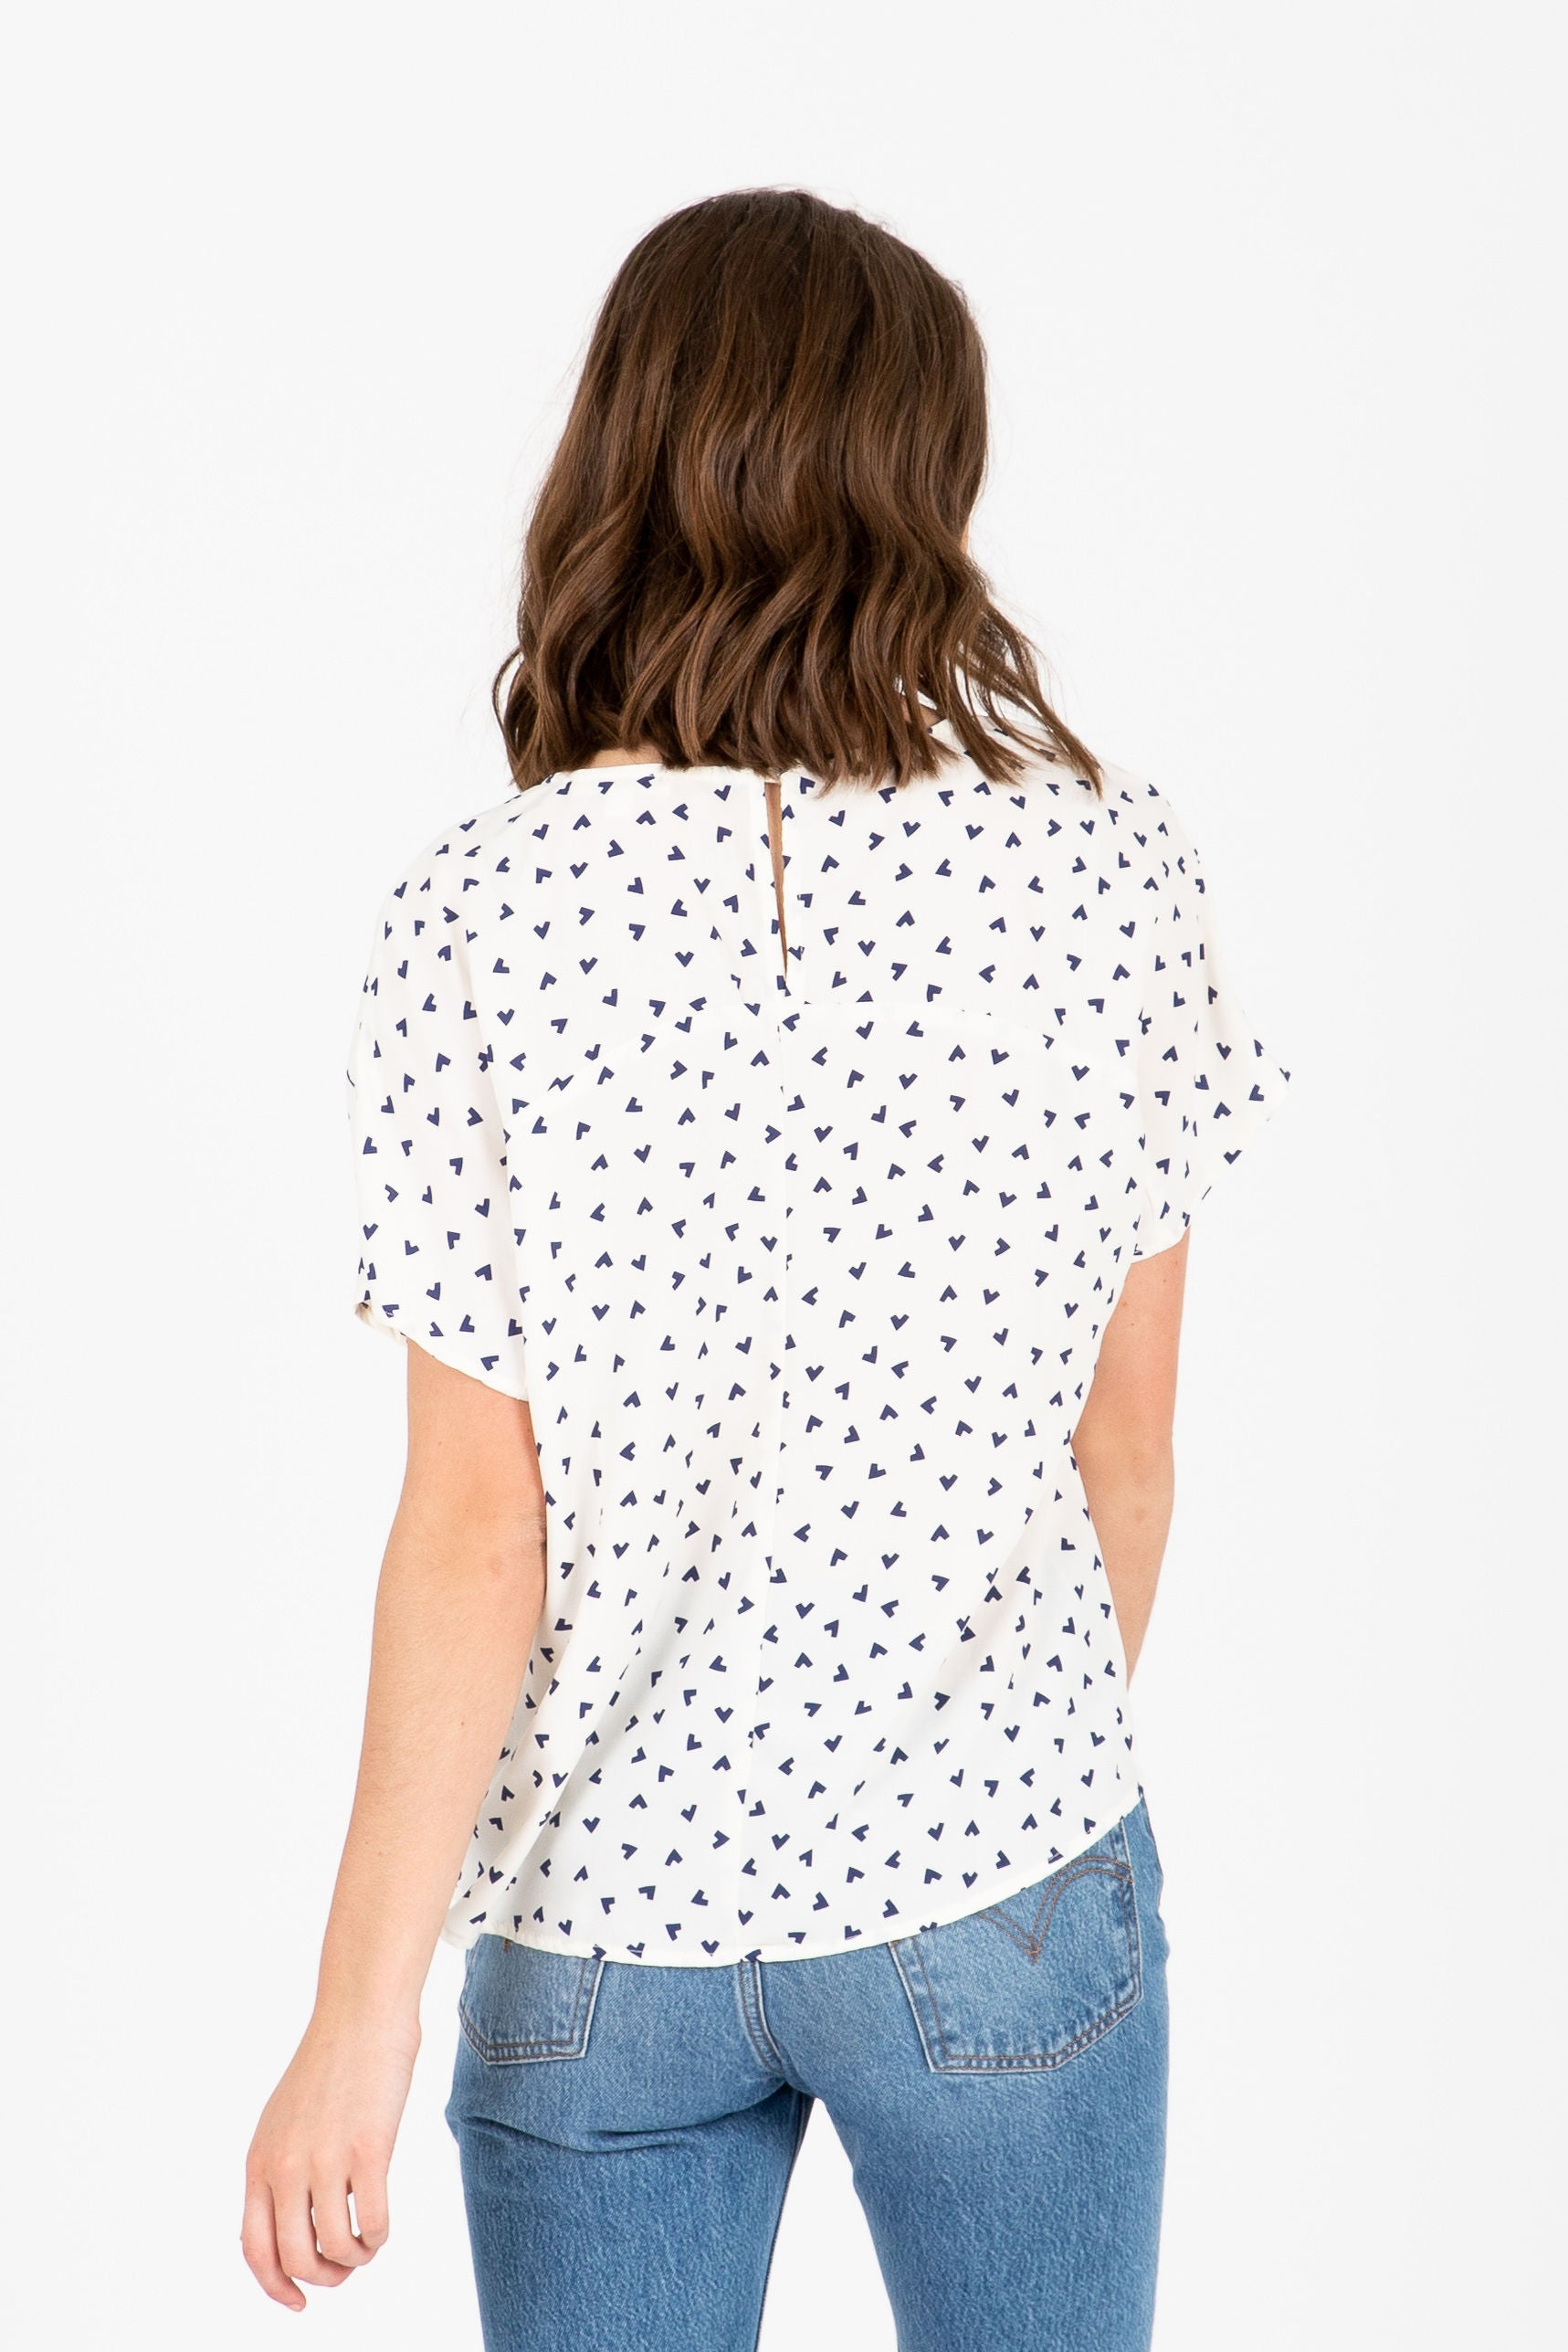 The Candyland Arrow Blouse in Ivory